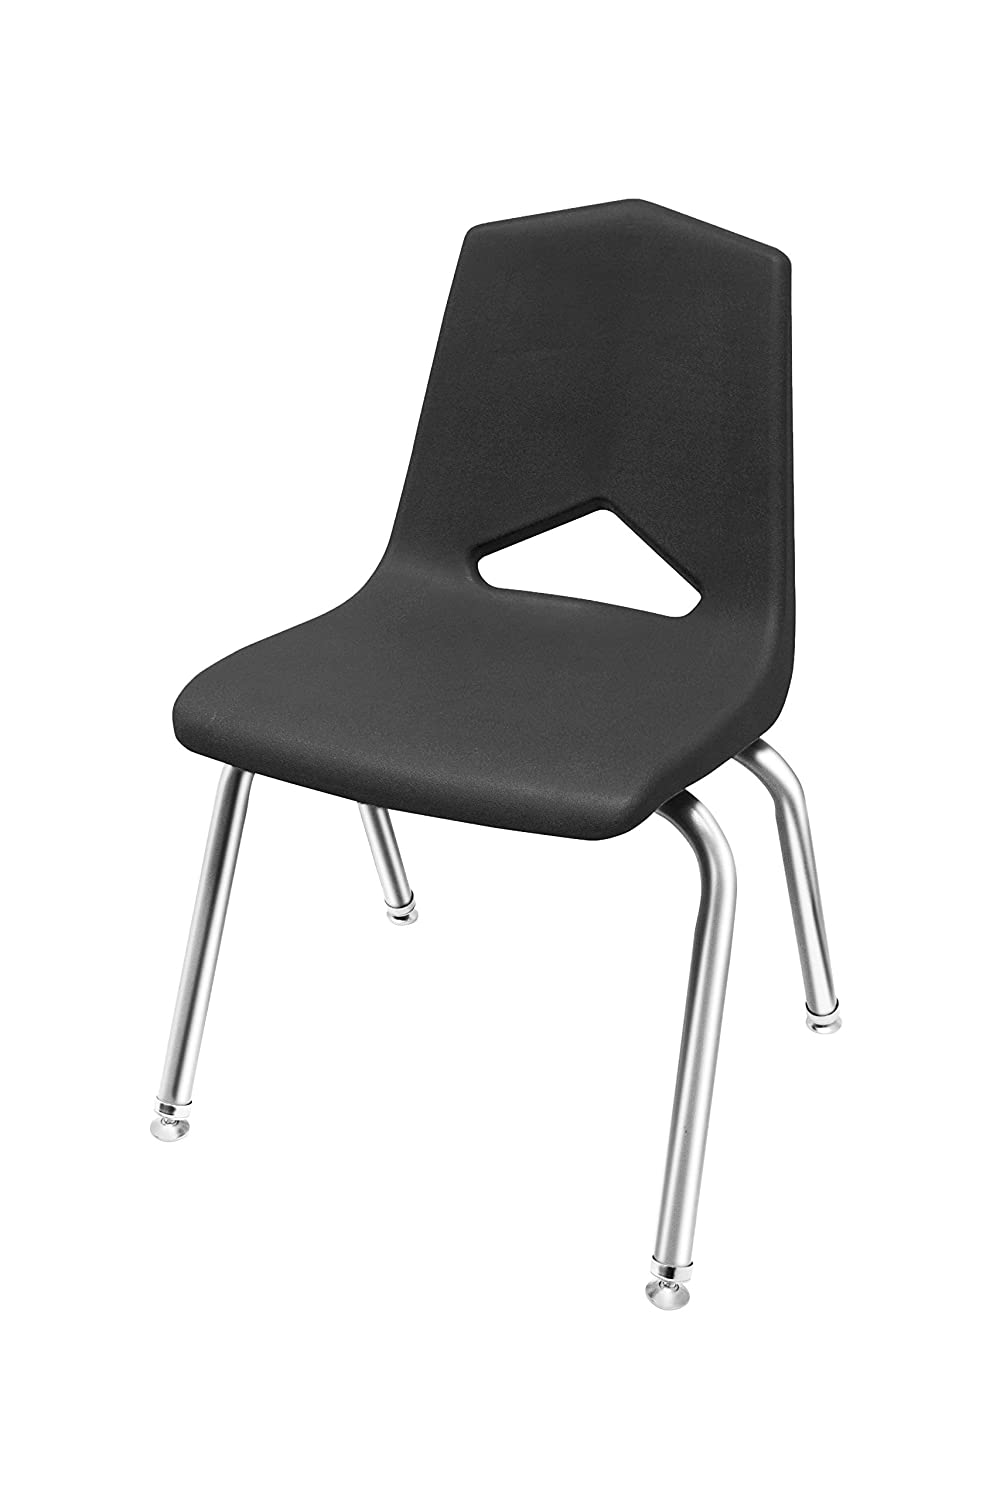 6-Pack School Stack Chairs Chrome Frame Marco Group MGA1101-16CR-BBL 16 Seat Height Blue Seat